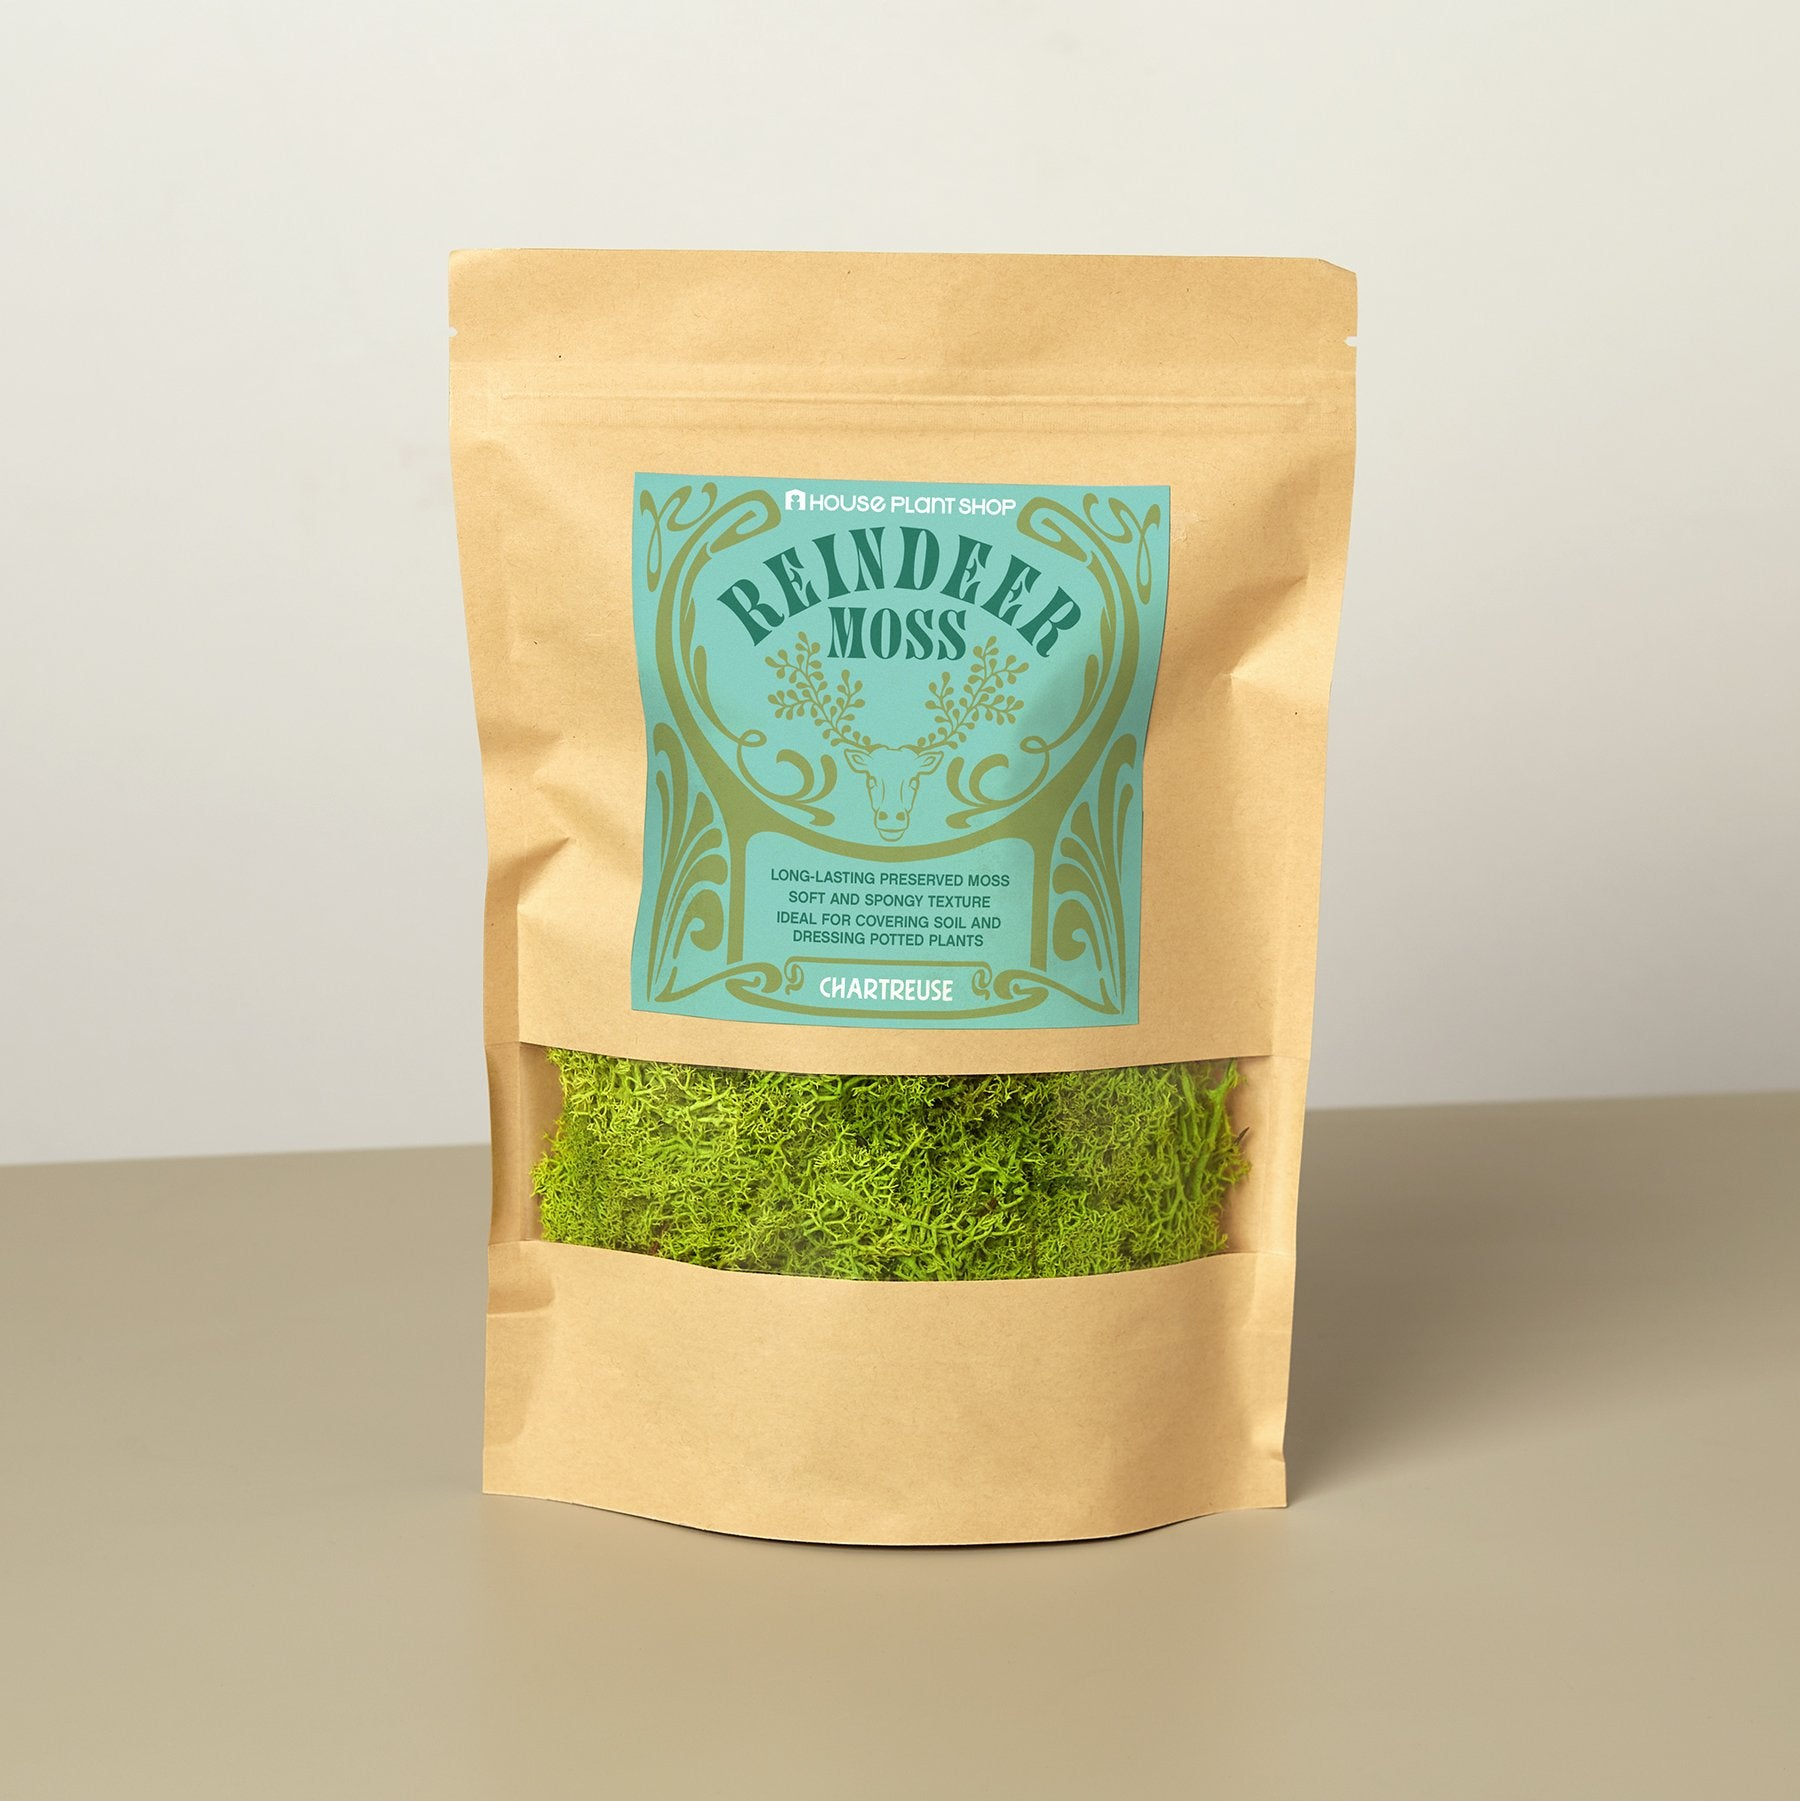 Preserved Reindeer Moss - Chartreuse - 6 oz